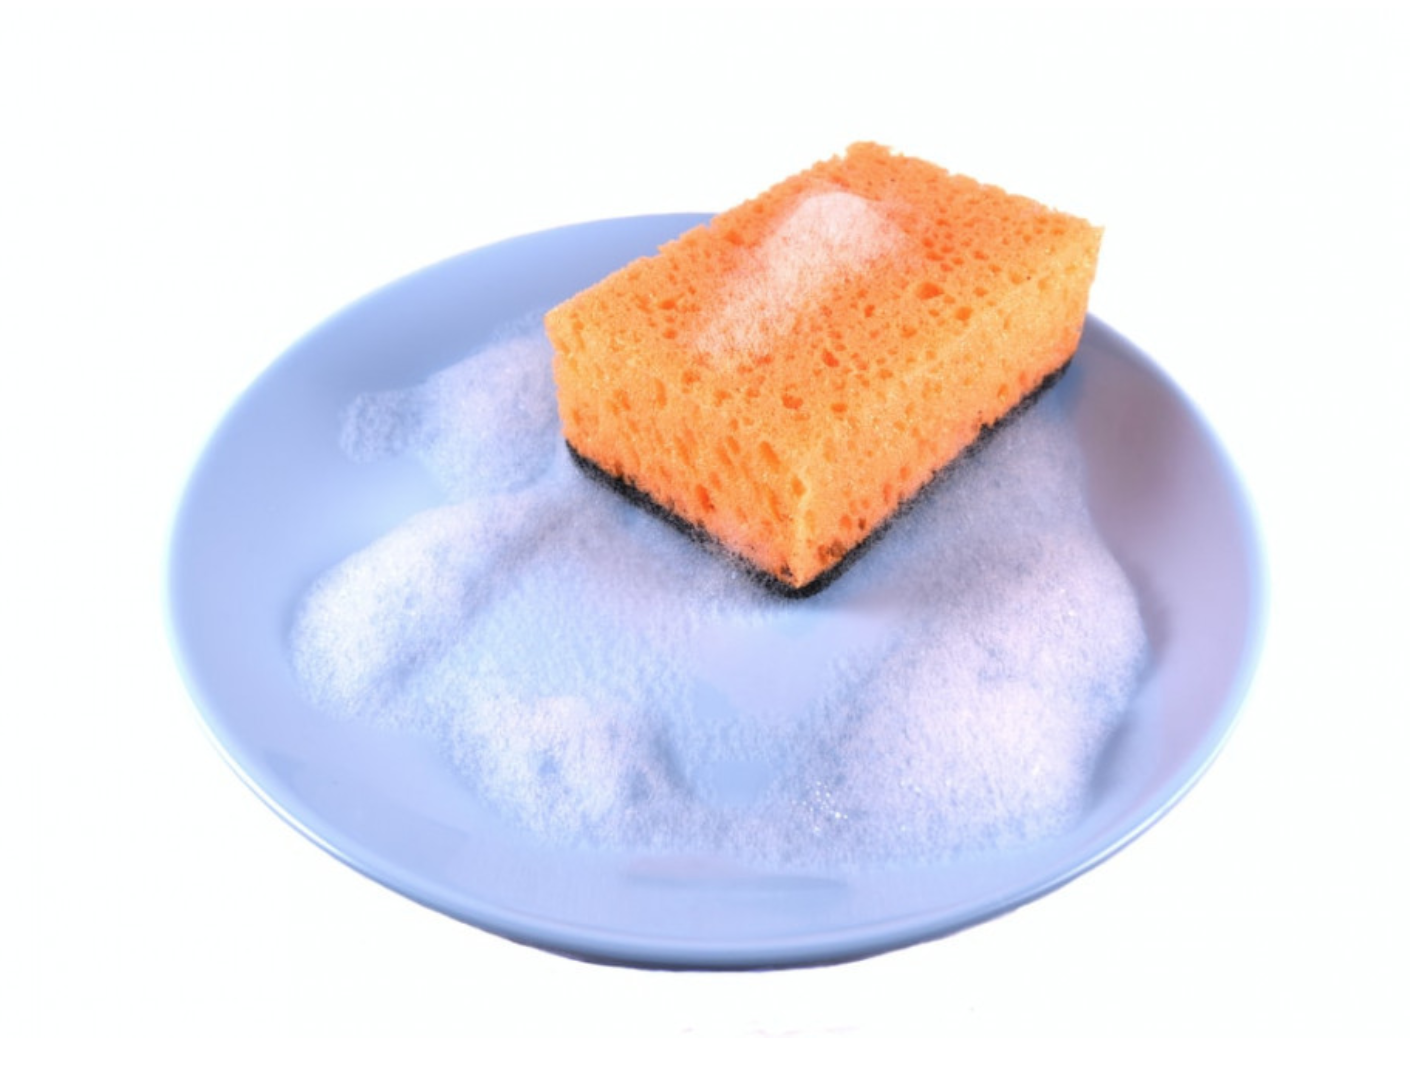 What Makes Kitchen Sponges Smell? - Sponge and dish